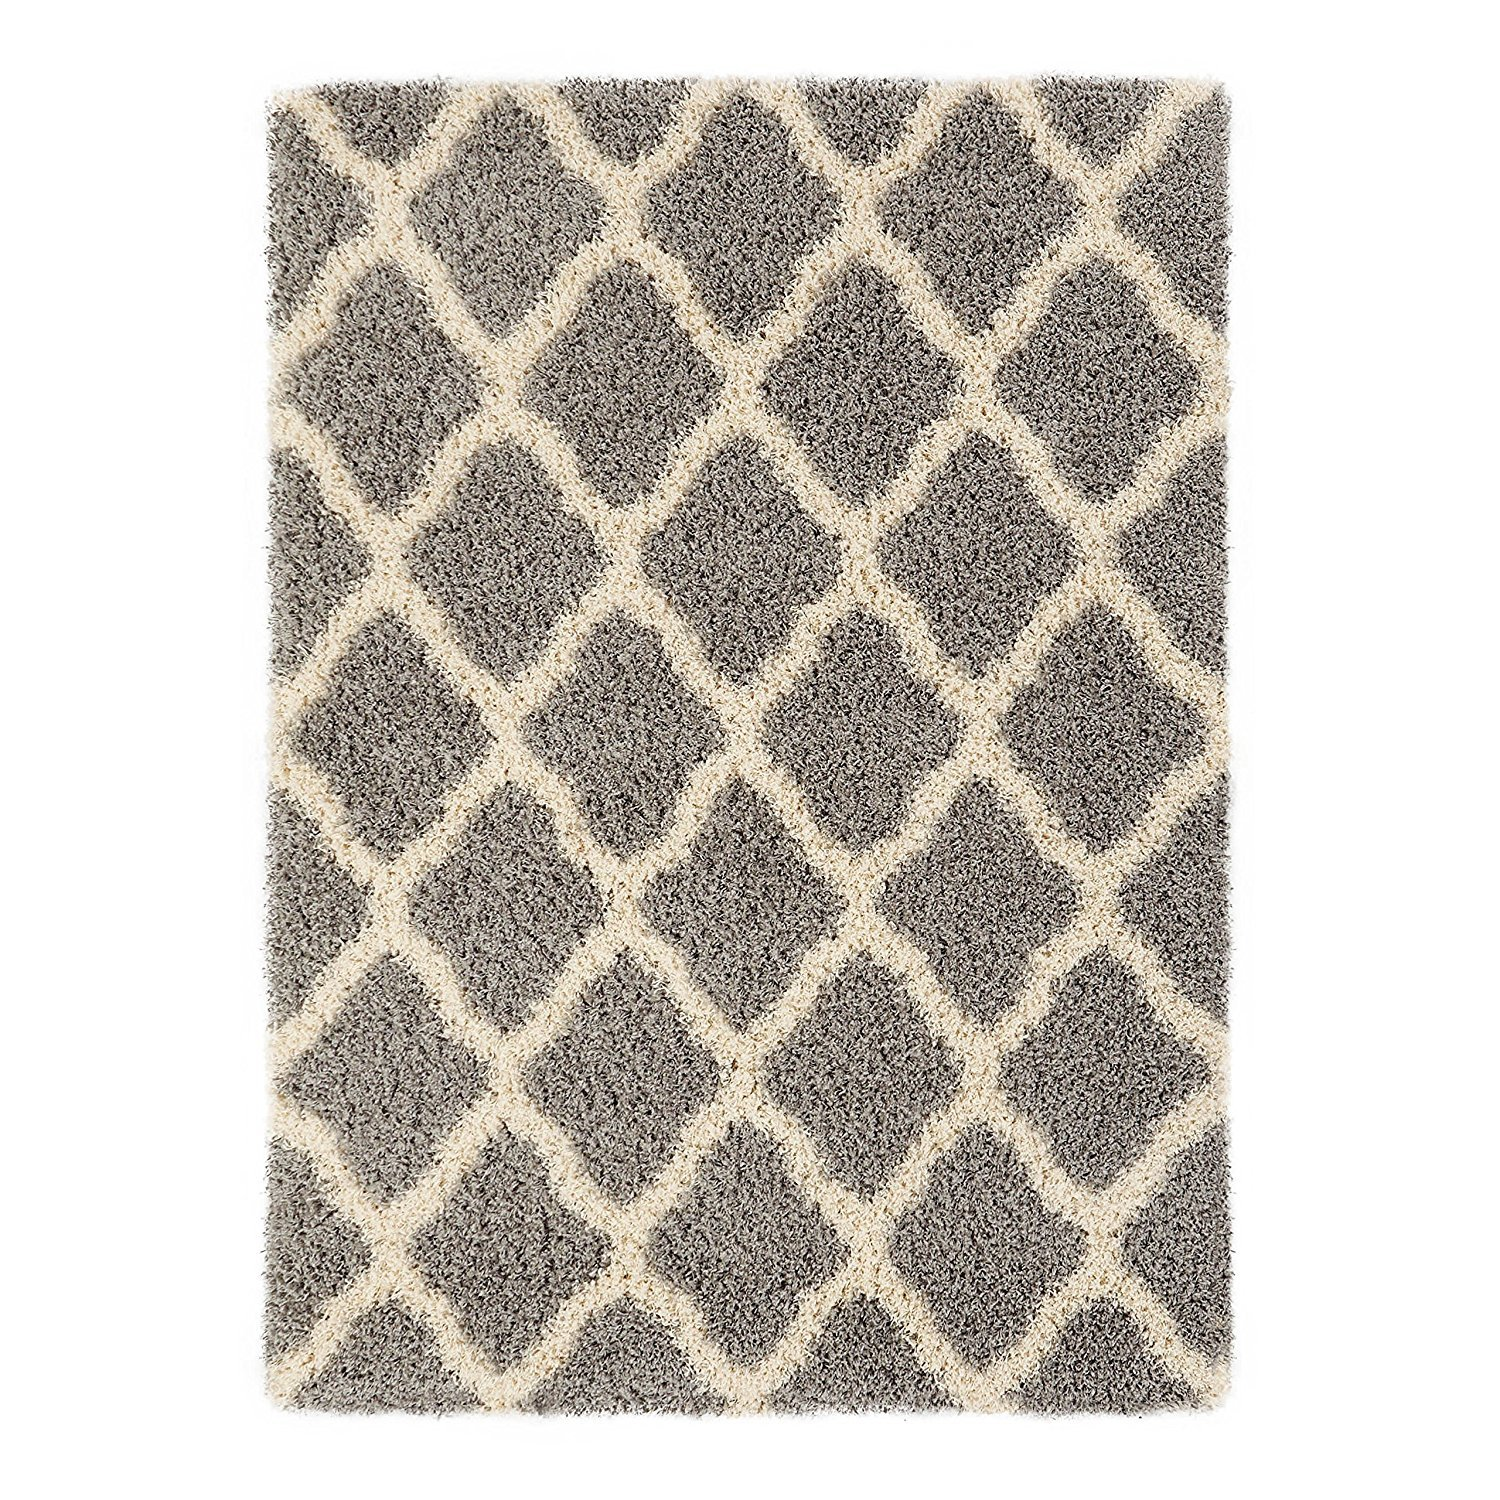 Sweet Home Stores Cozy Shag Collection Moroccan Trellis Design Shag Rug Contemporary Living & Bedroom Soft Shaggy Area Rug,   Grey & Cream,  94'' L x 118'' W by Sweet Home Stores (Image #4)